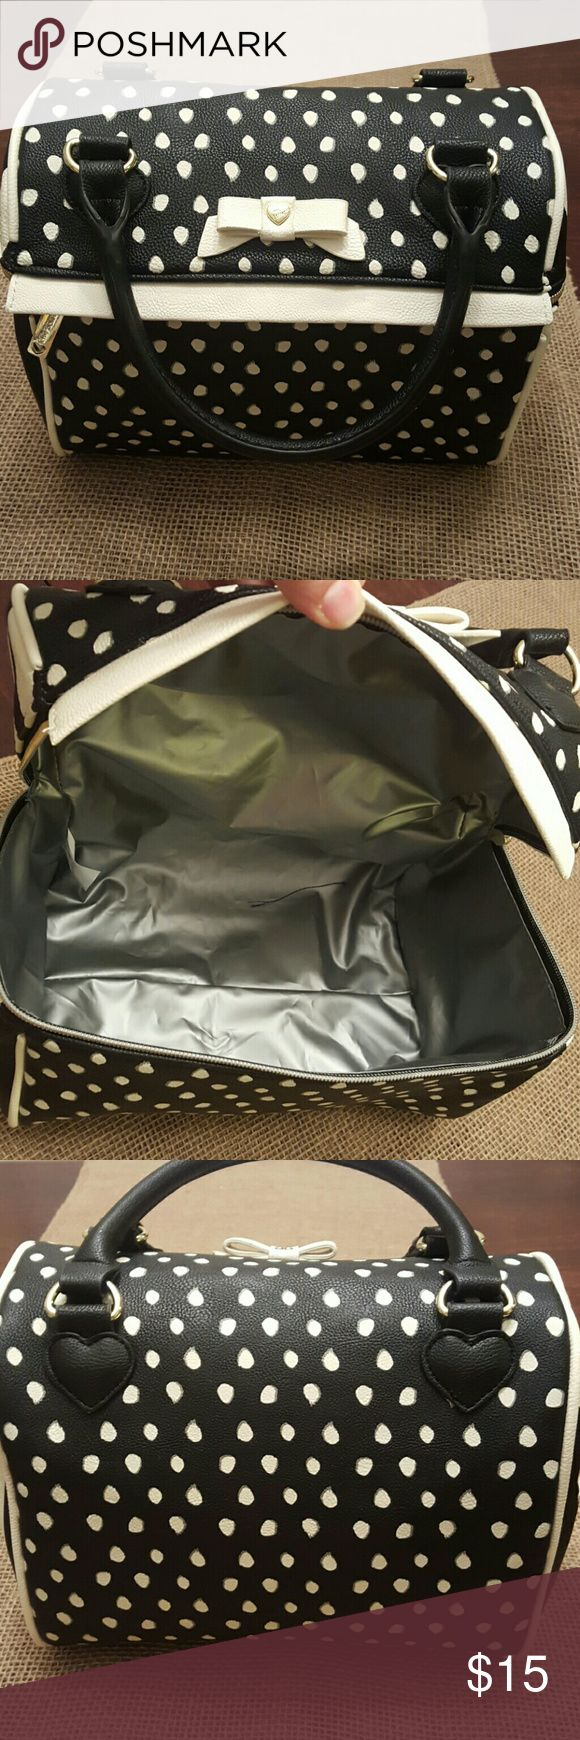 Insulated Lunch bag Super cute leather black and white insulated (water proof) Lunch bag Never used Perfect gift ?? Other